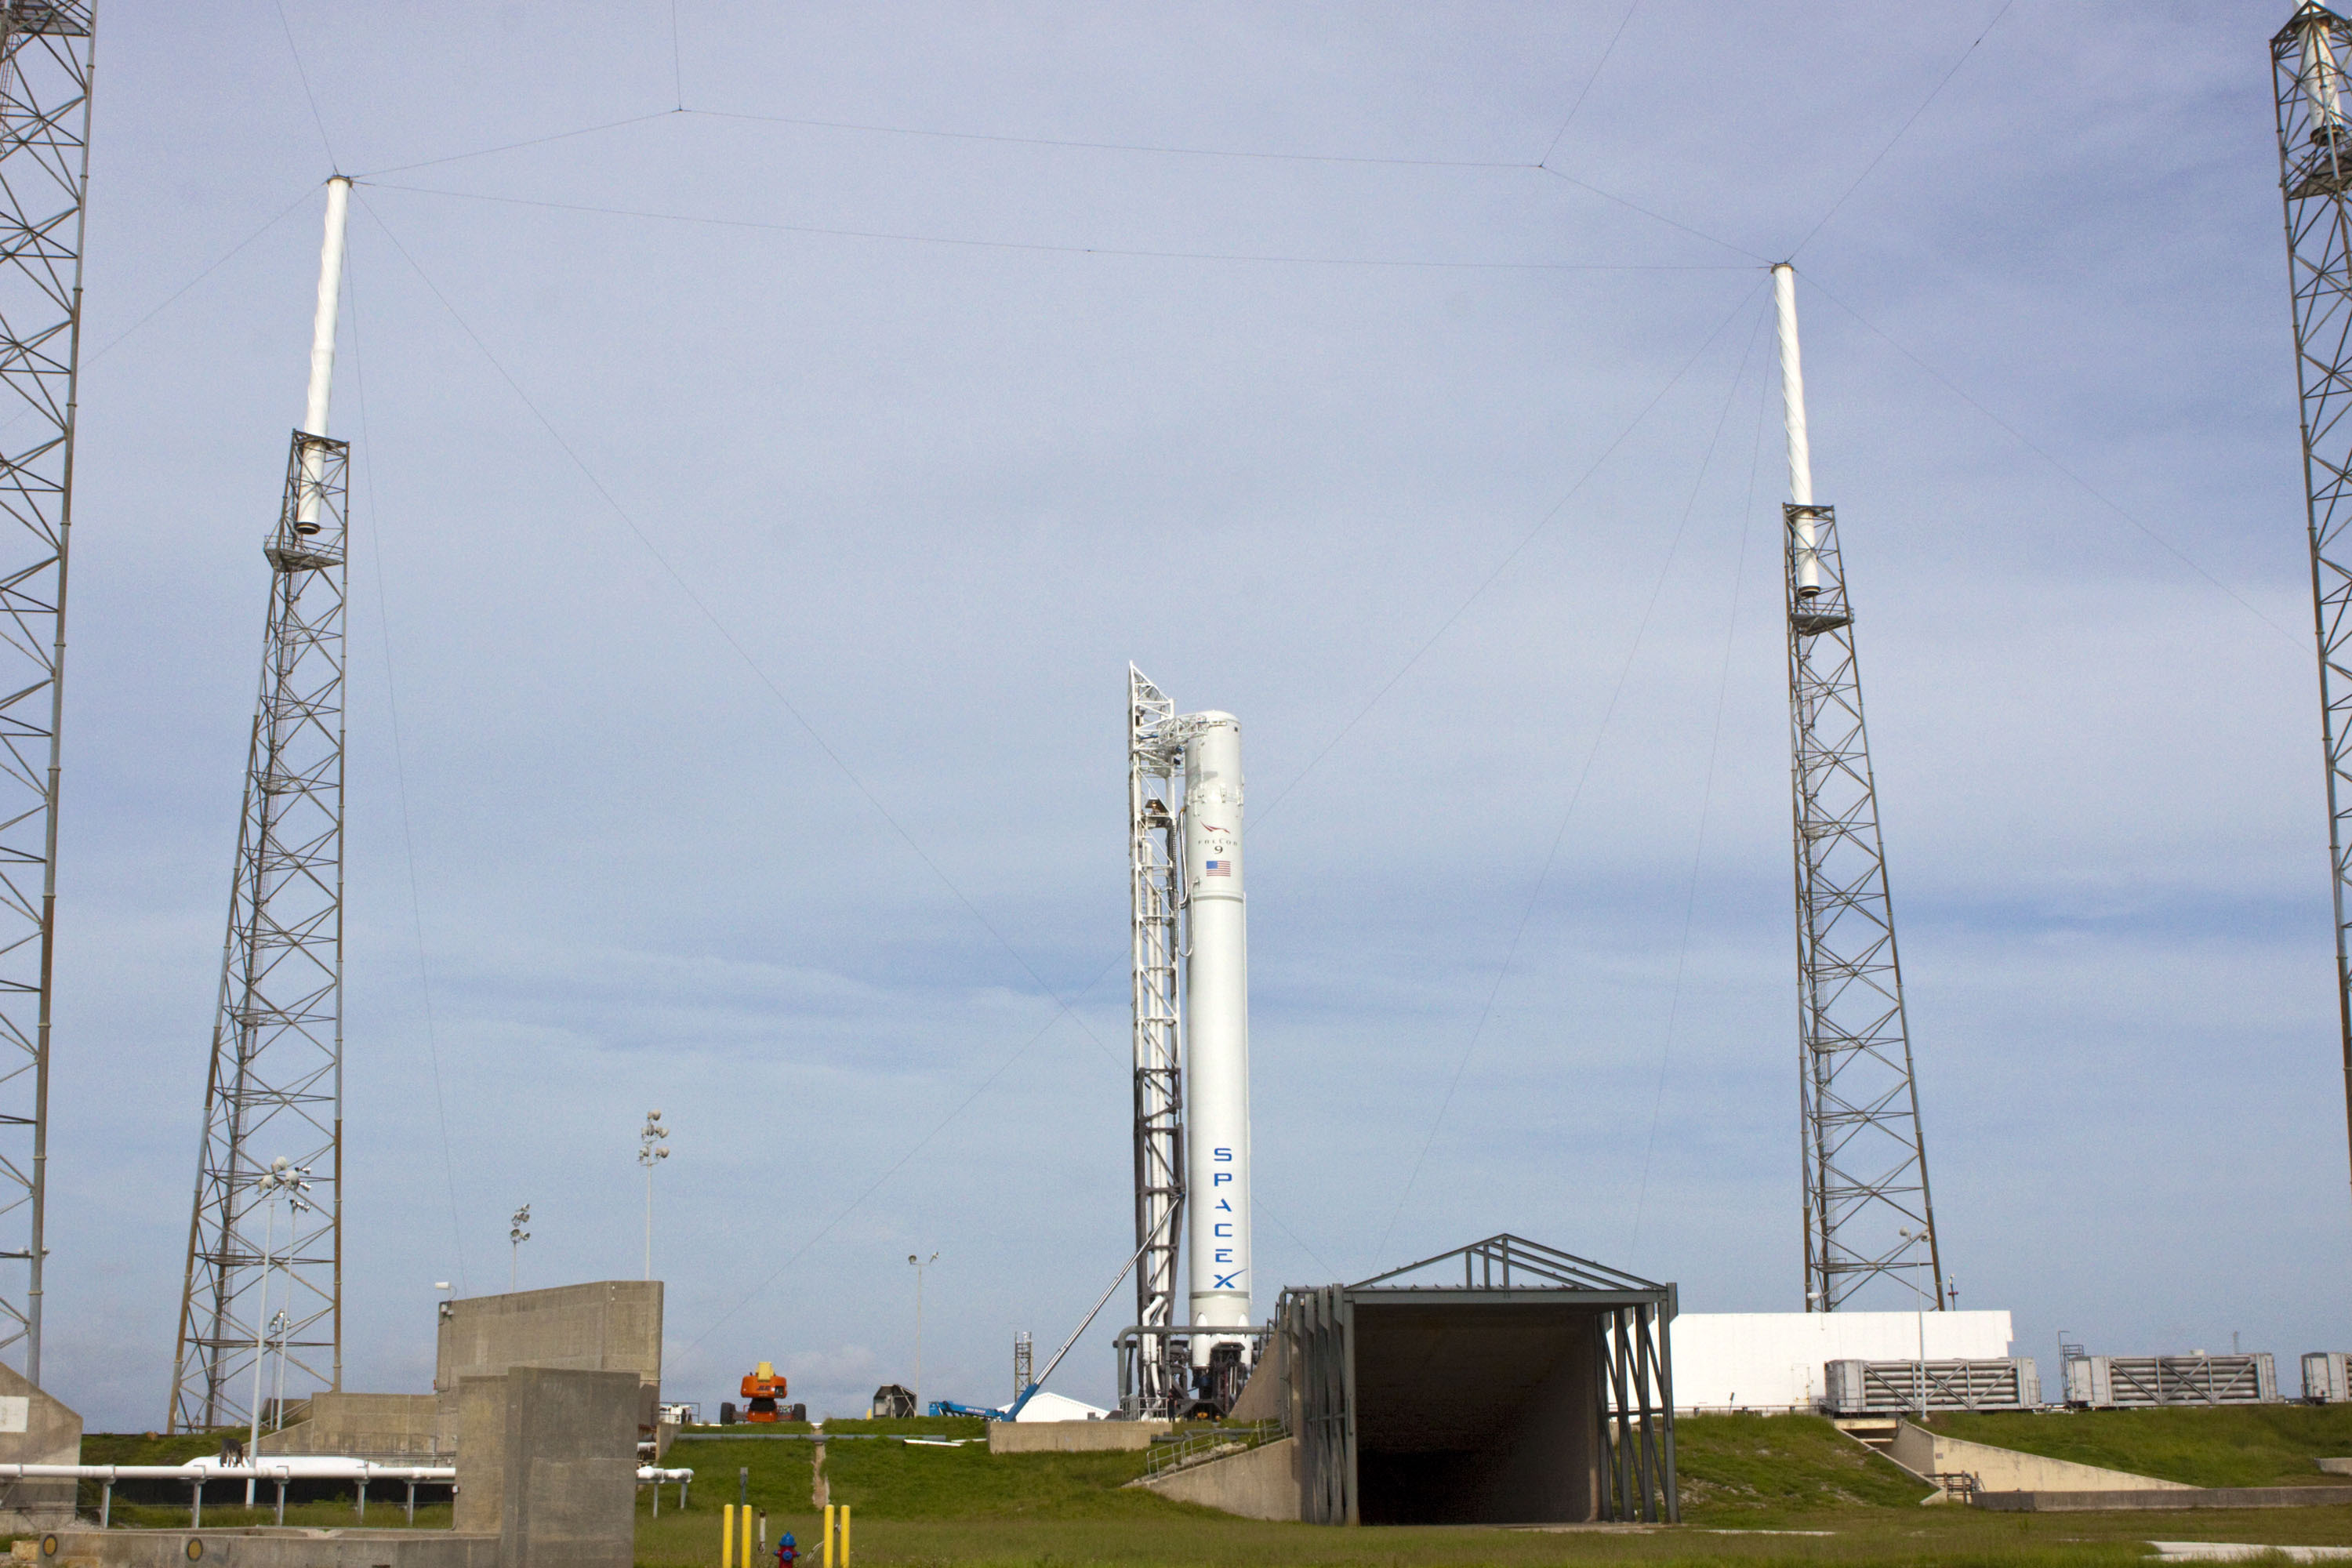 SpaceX, Falcon 9 rocket is in position for a wet dress rehearsal at Space Launch Complex 40